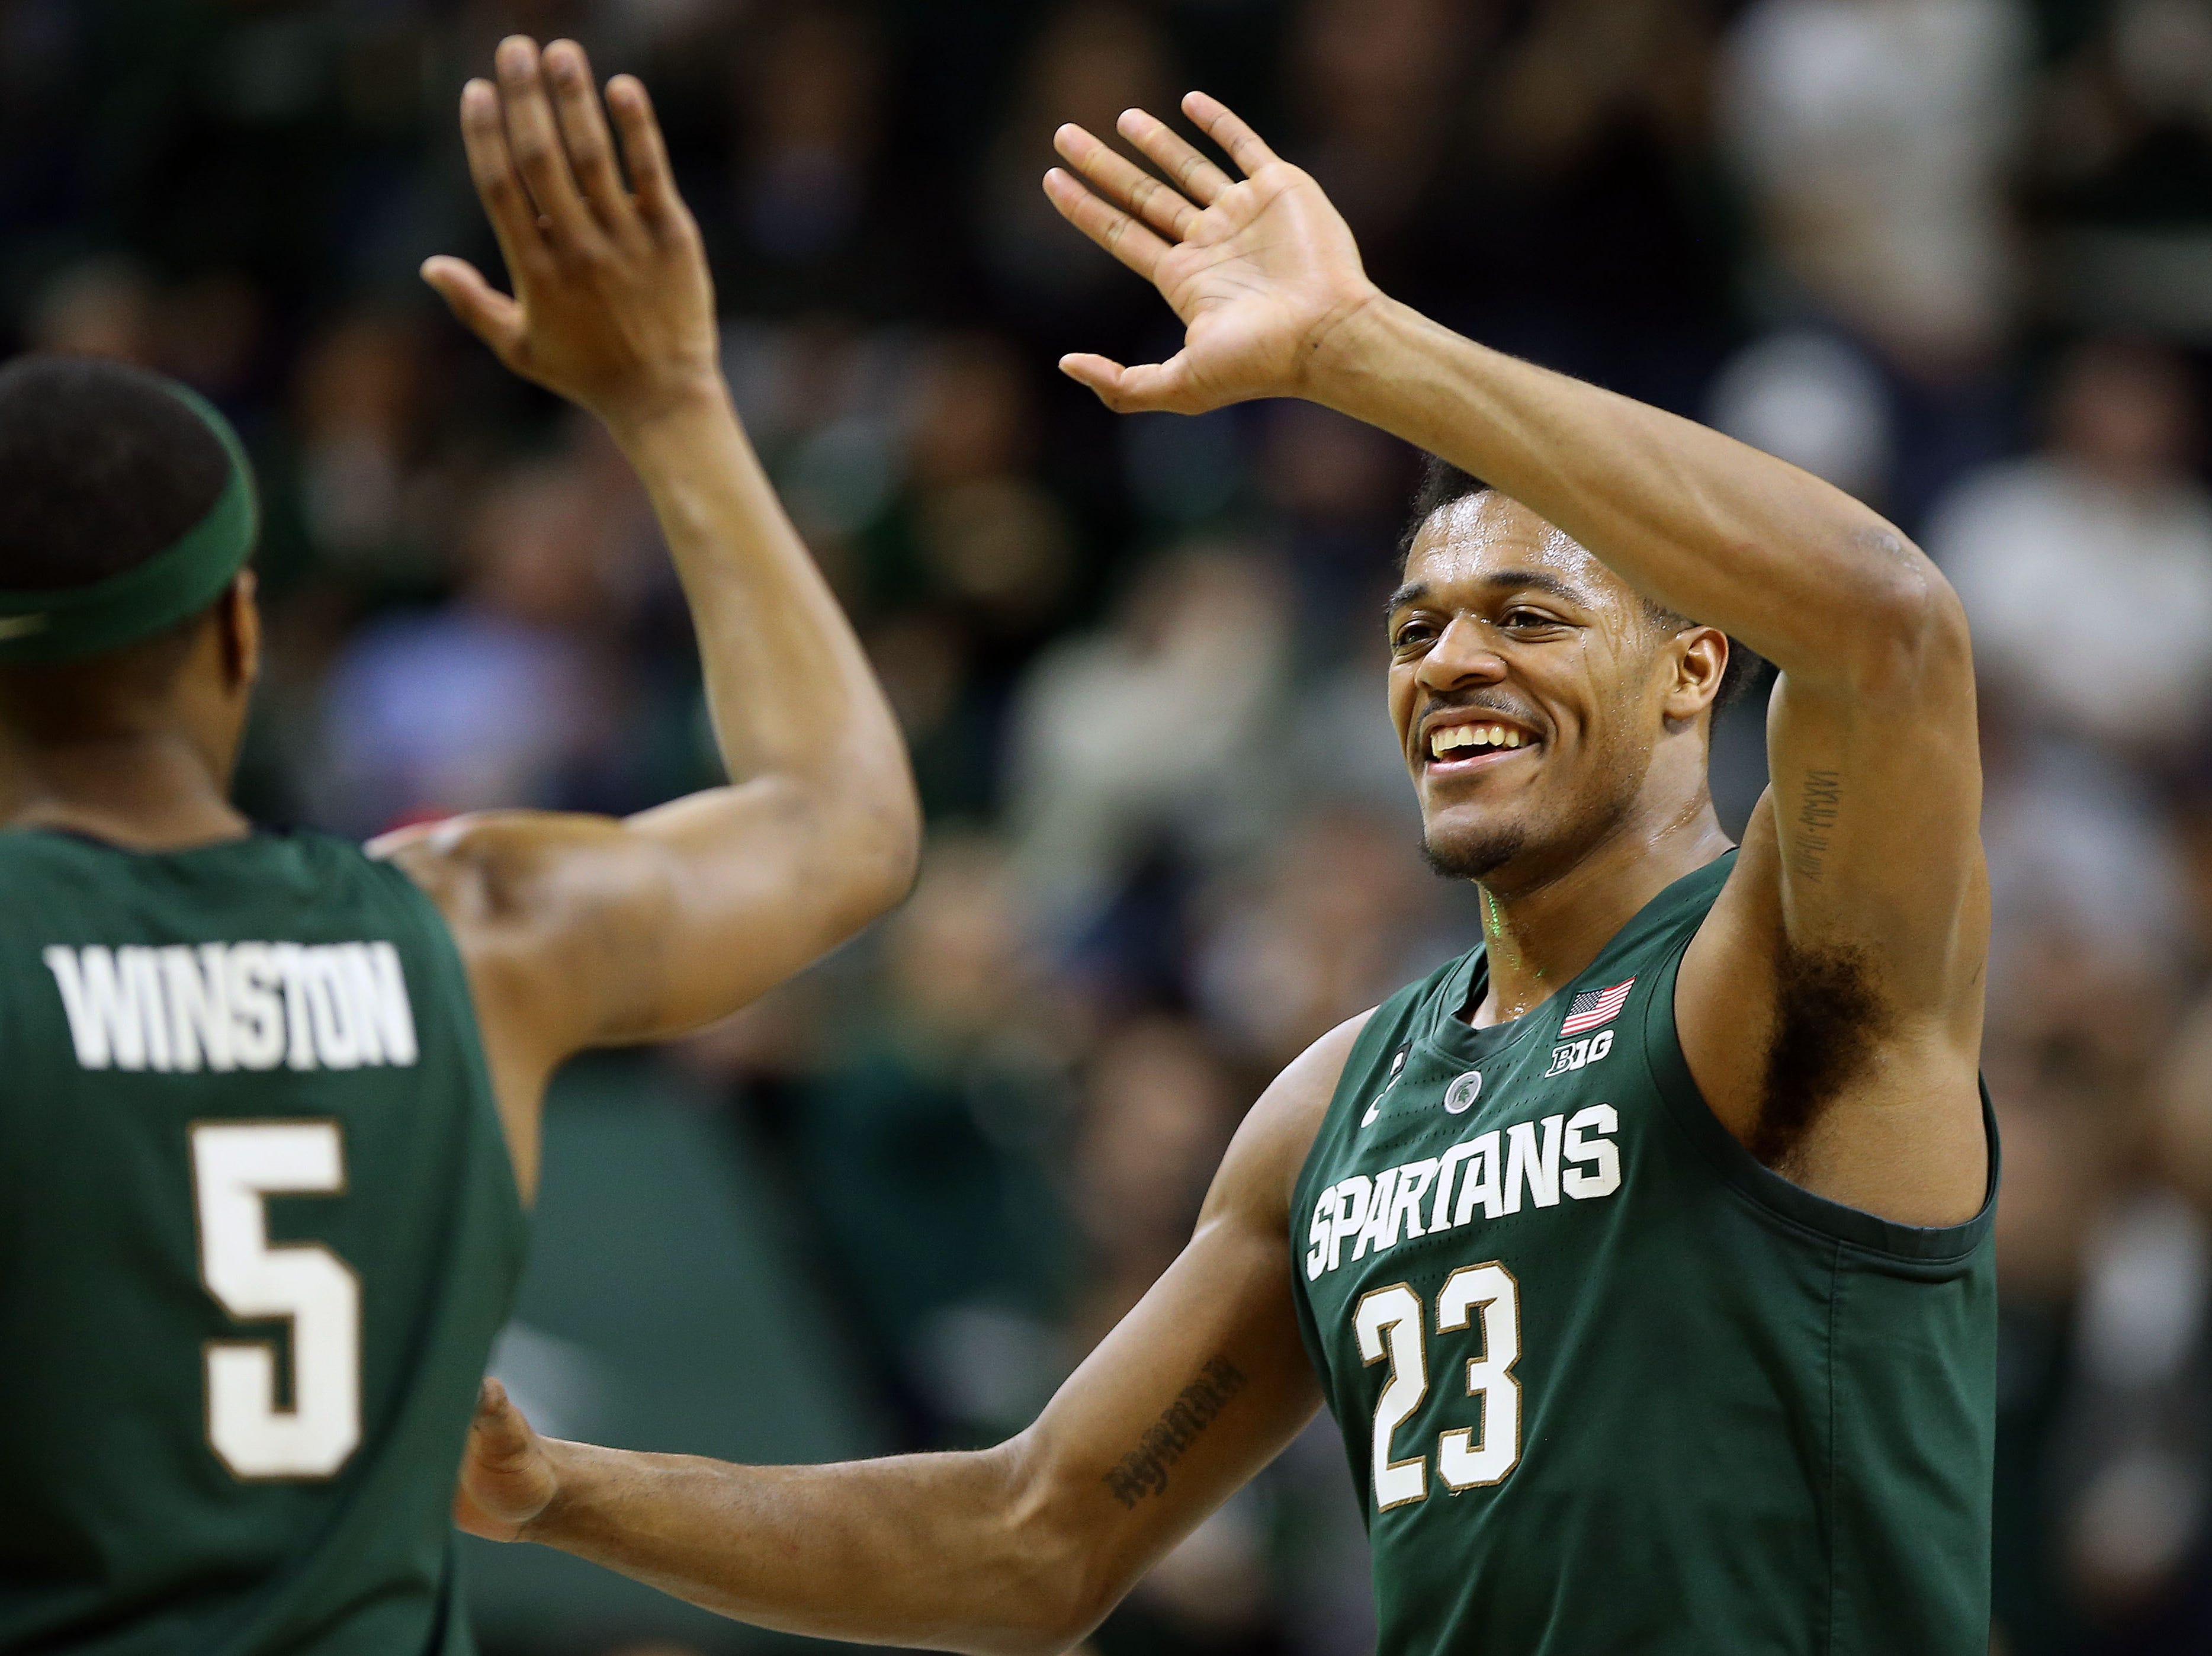 Mar 5, 2019; East Lansing, MI, USA; Michigan State Spartans forward Xavier Tillman (23) reacts with Michigan State Spartans guard Cassius Winston (5) during the first half of a game against the Nebraska Cornhuskers at the Breslin Center. Mandatory Credit: Mike Carter-USA TODAY Sports